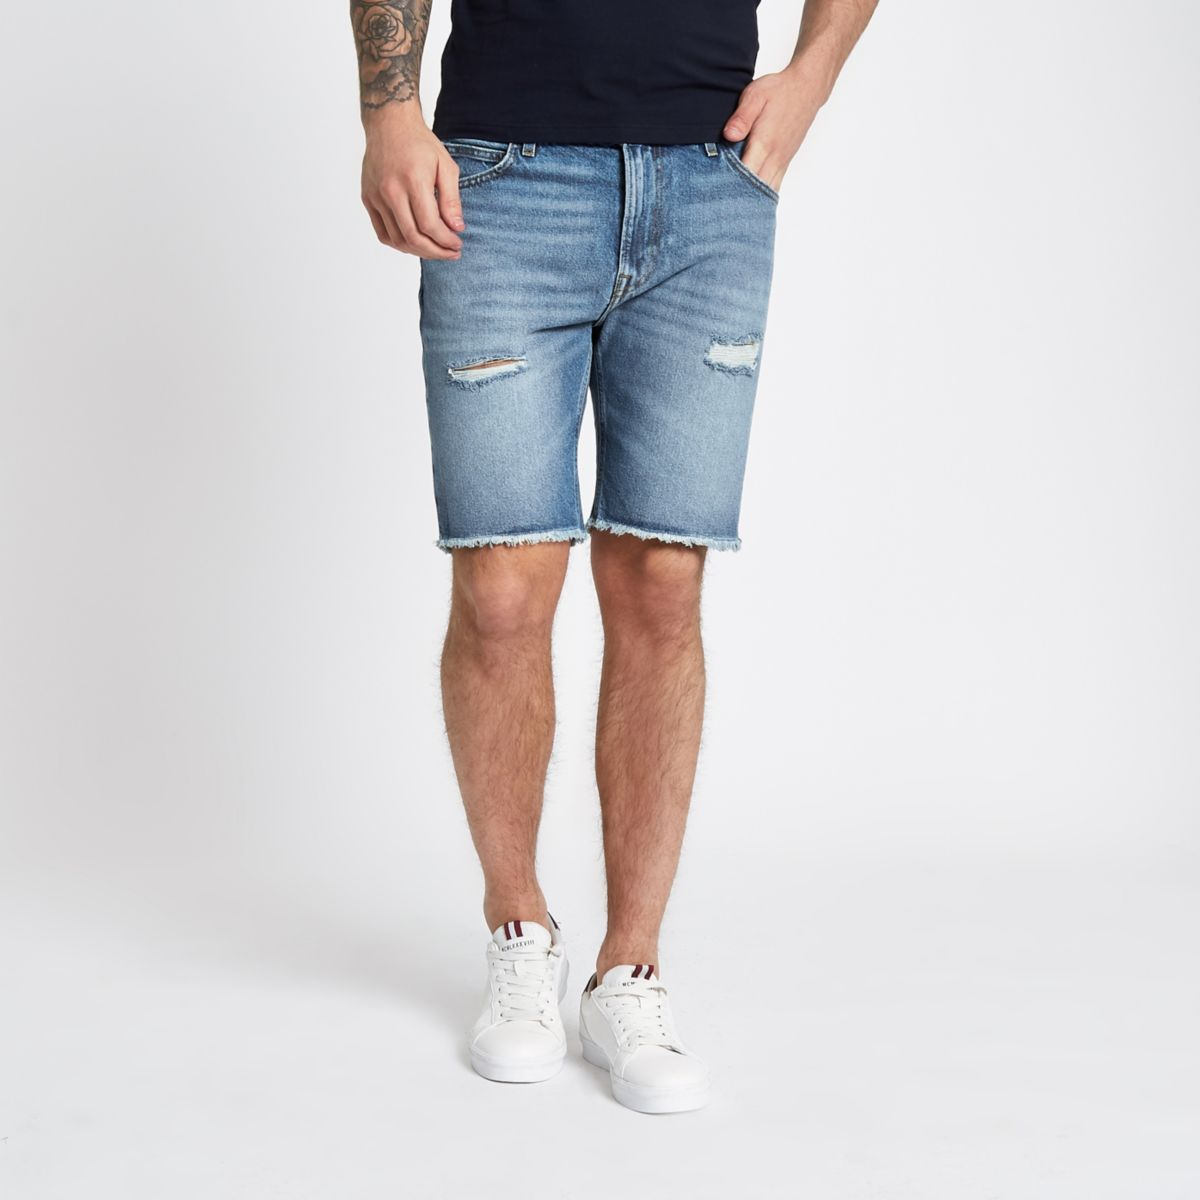 Lee blue raw hem denim shorts